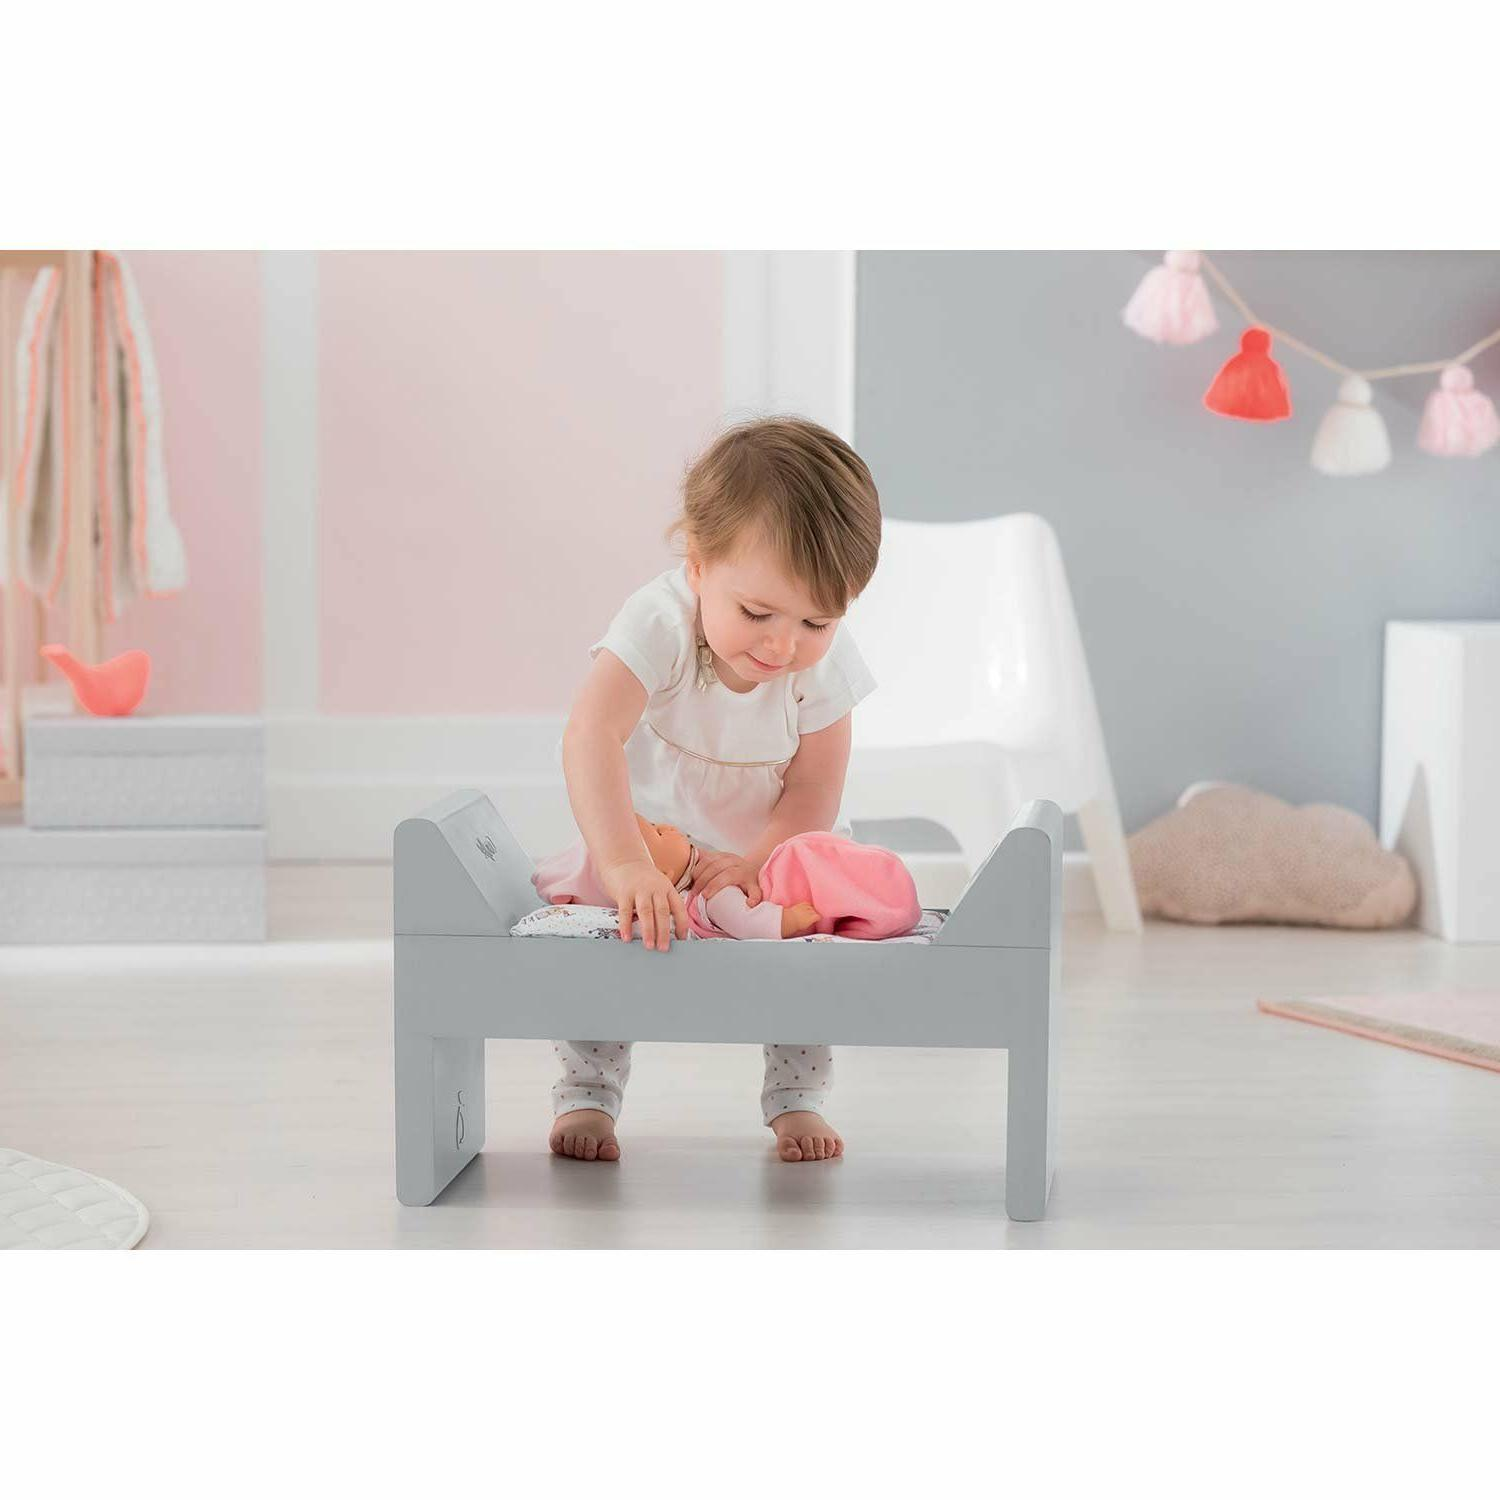 Corolle Doll and bed size in